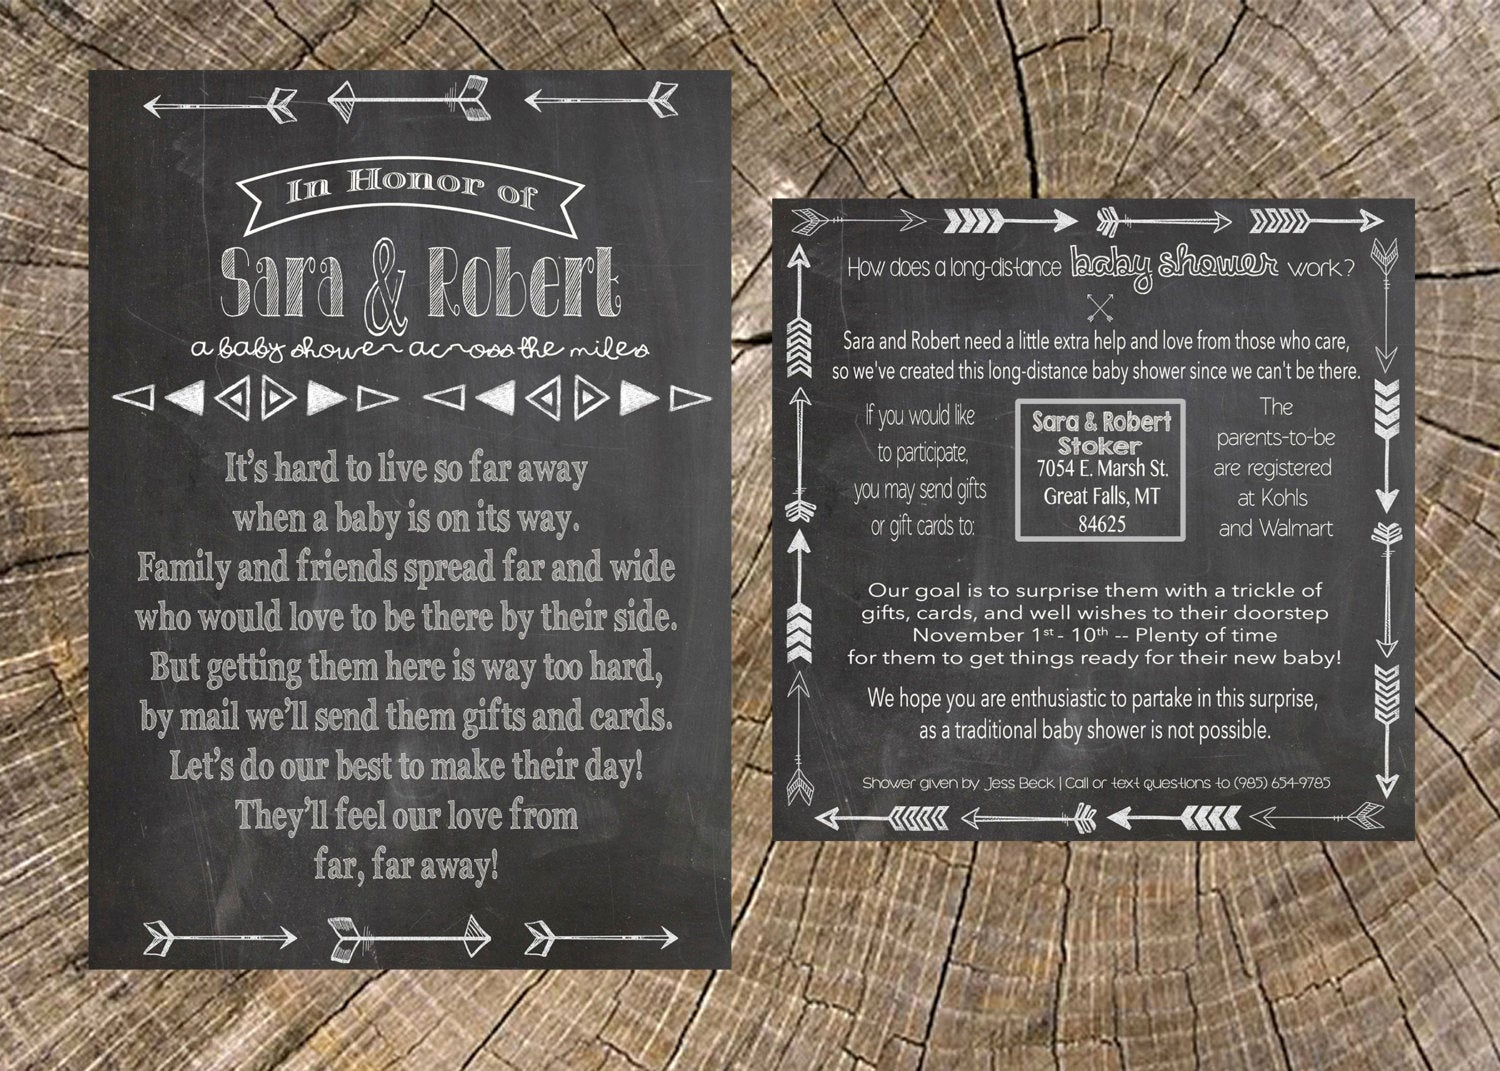 Long Distance Baby Shower Invitation Beautiful Long Distance Baby Shower Neutral Chalkboard 5x7 Invitation